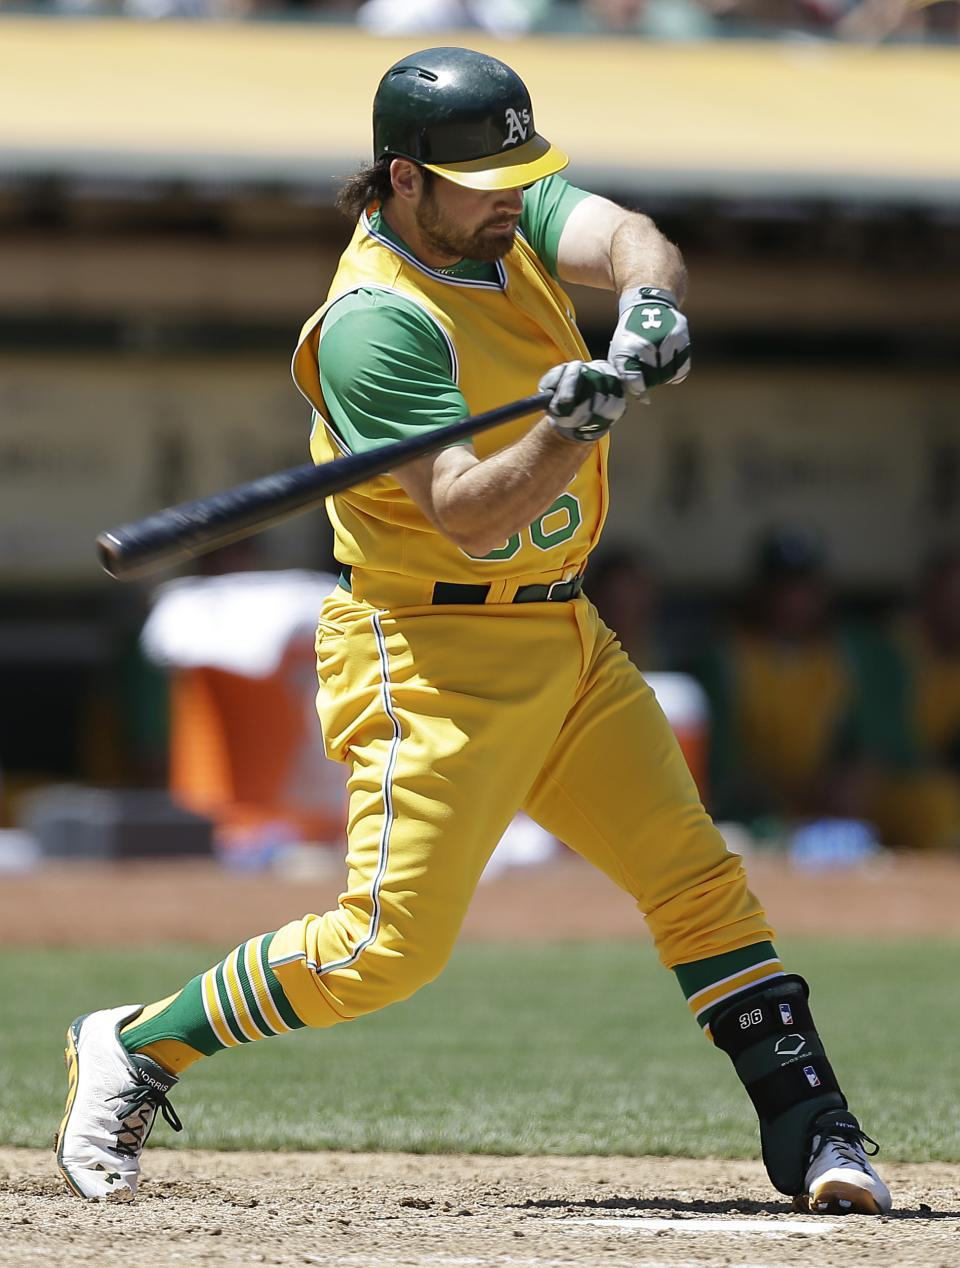 Norris hits 2-run HR in A's 3-1 win over Angels